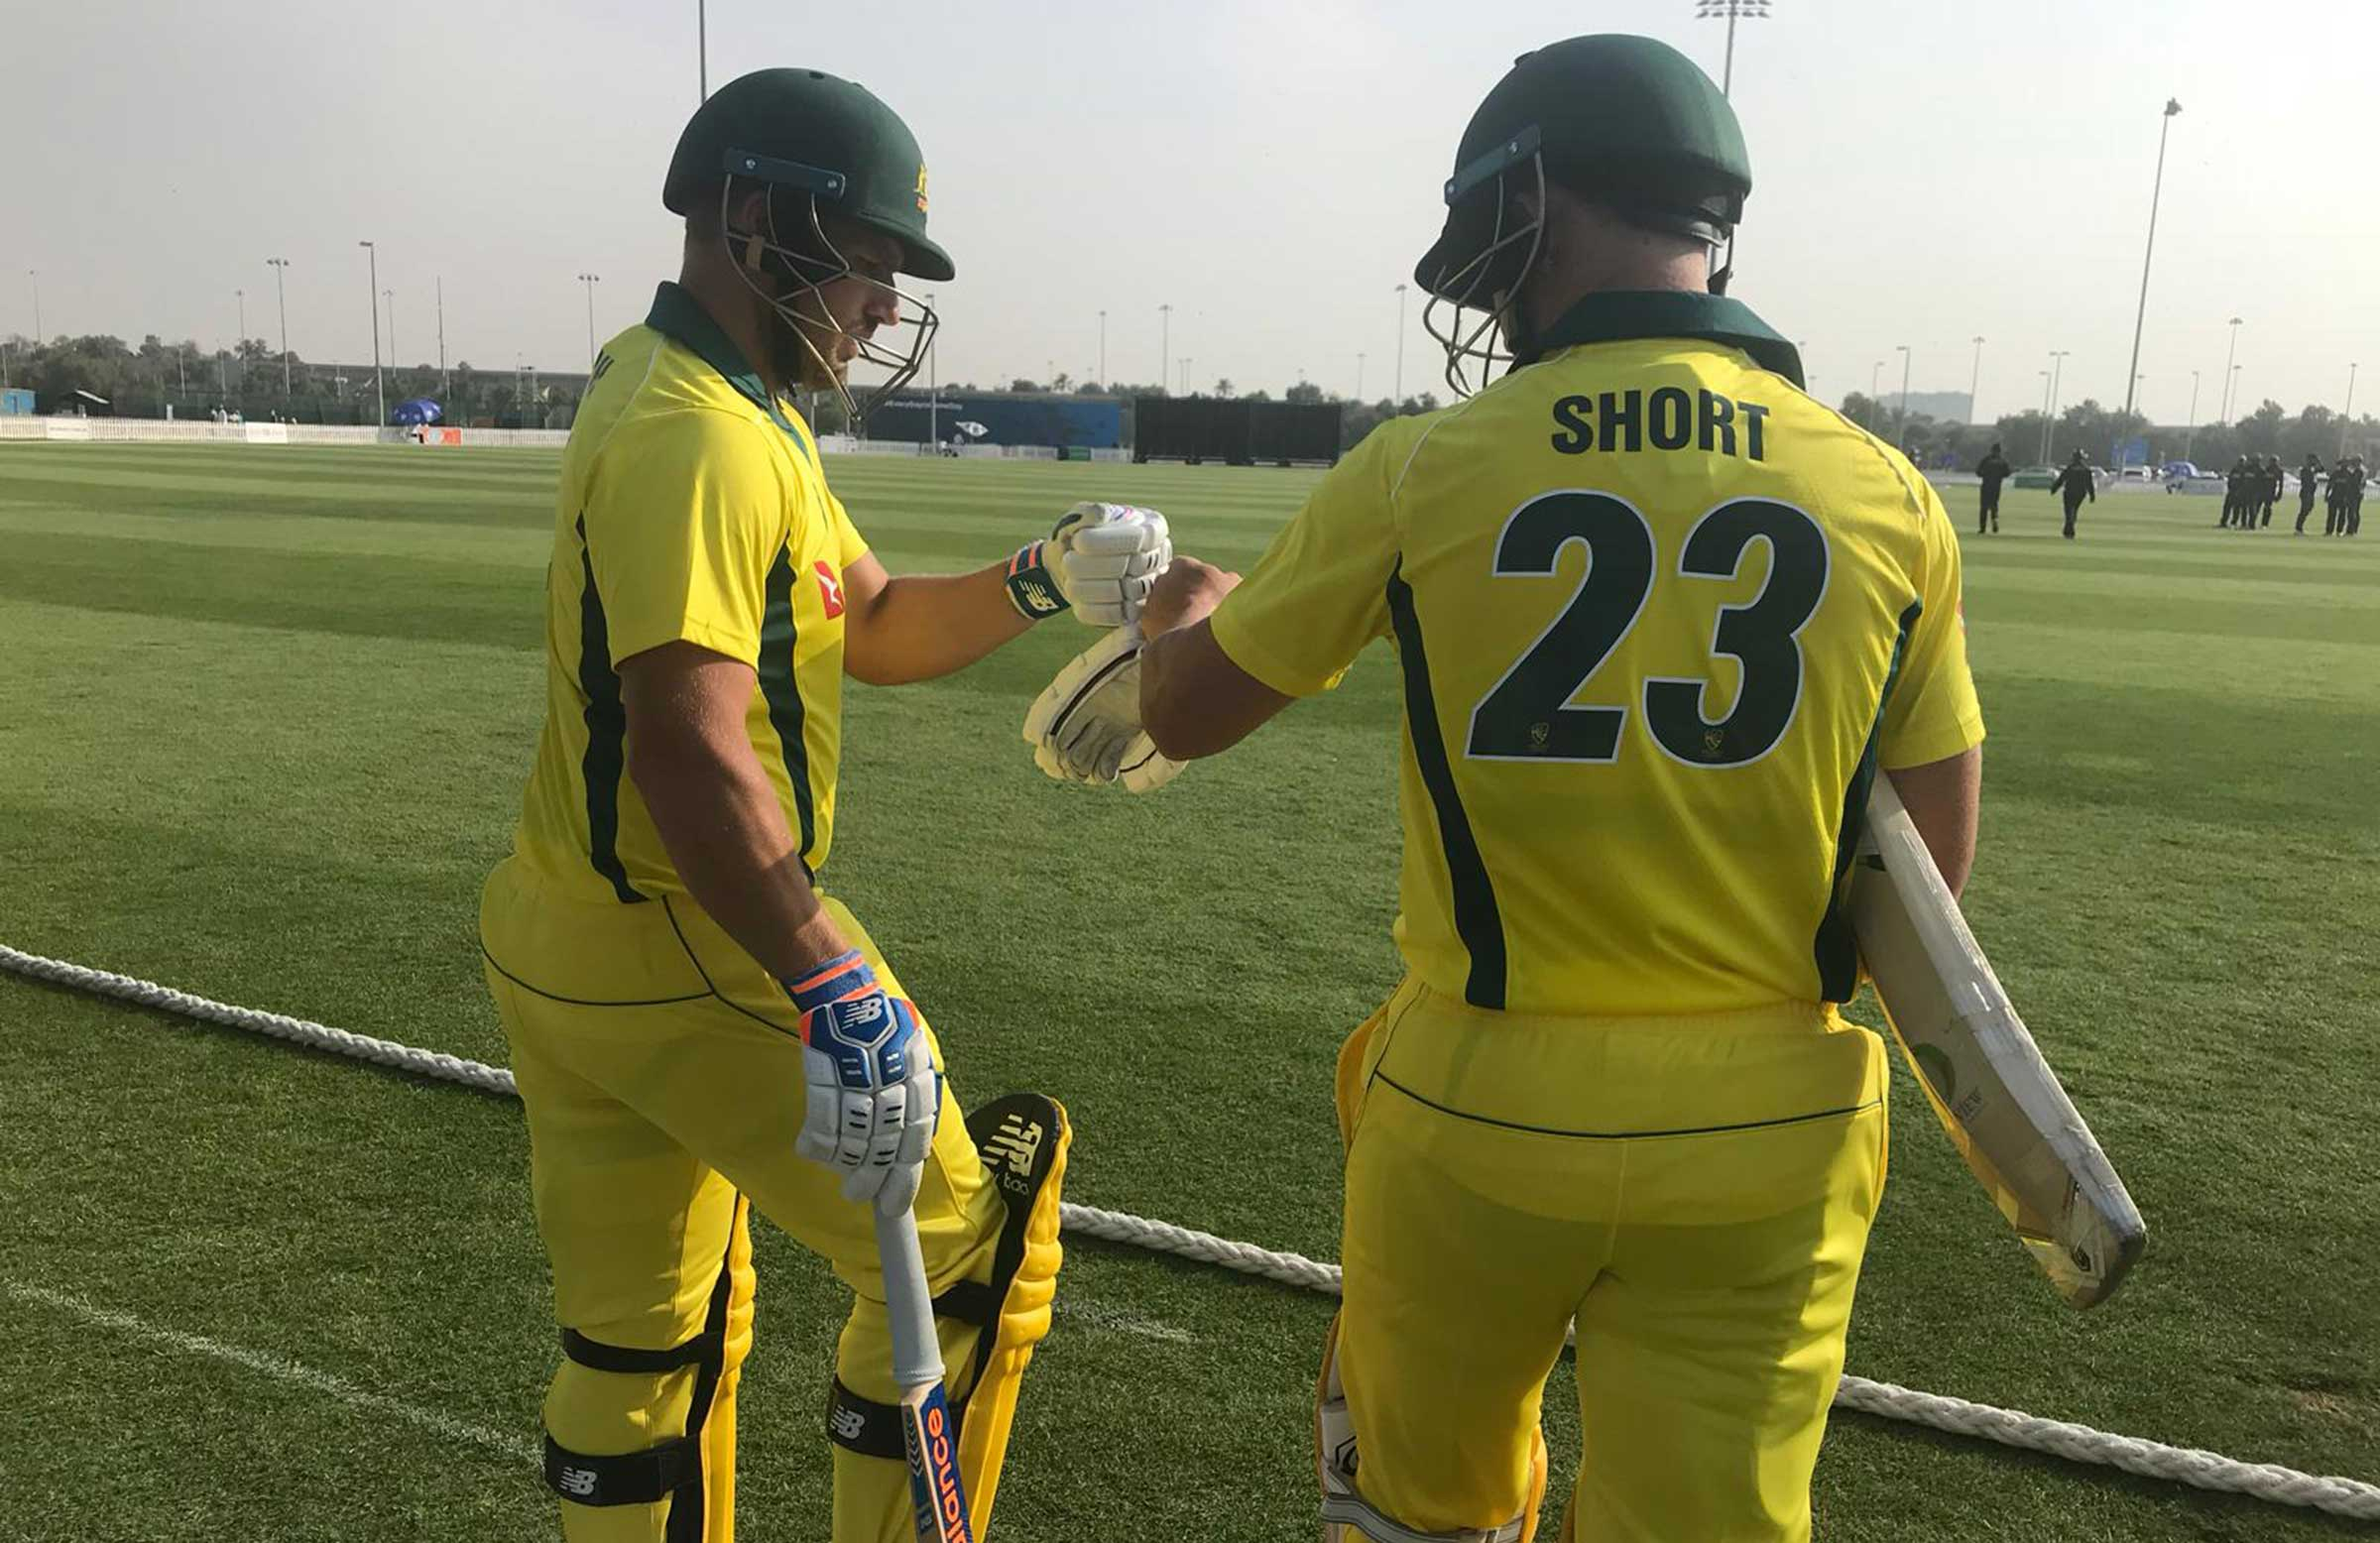 Short carried his bat with 68 not out // Cricket Network